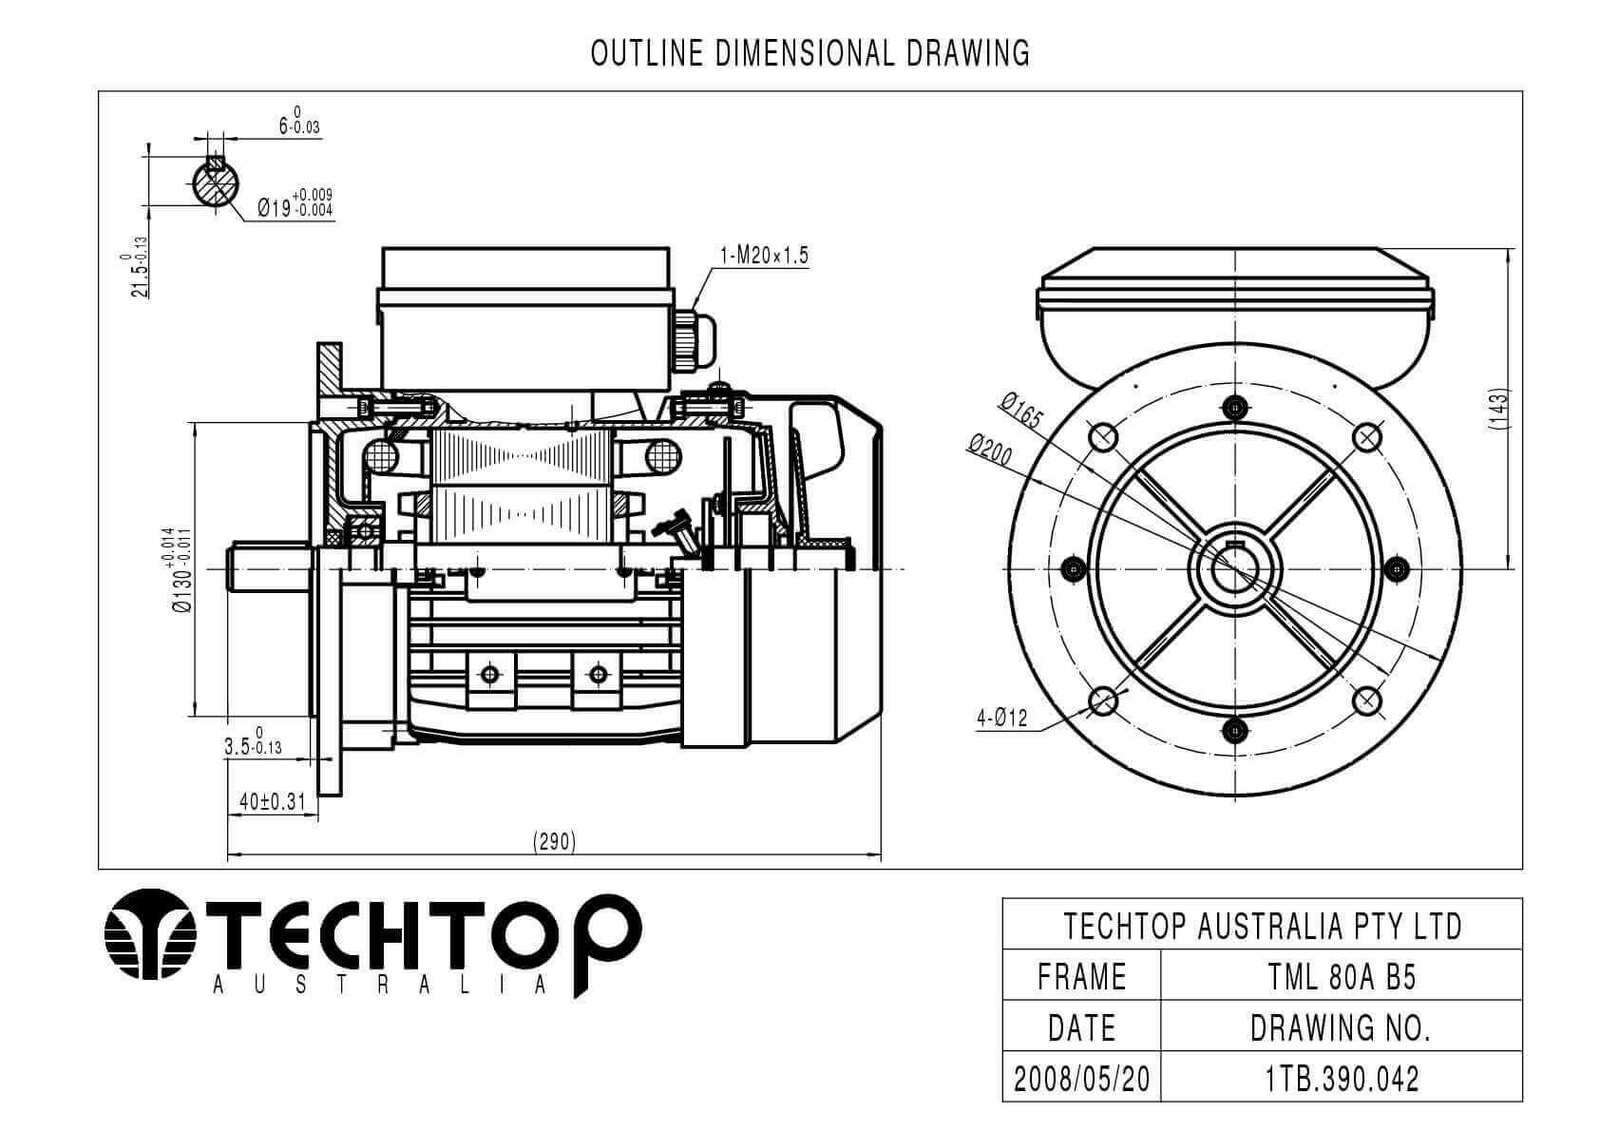 TechTop 0.75kW Motor 240V 1 Phase 2 Pole, 2800 RPM, Foot